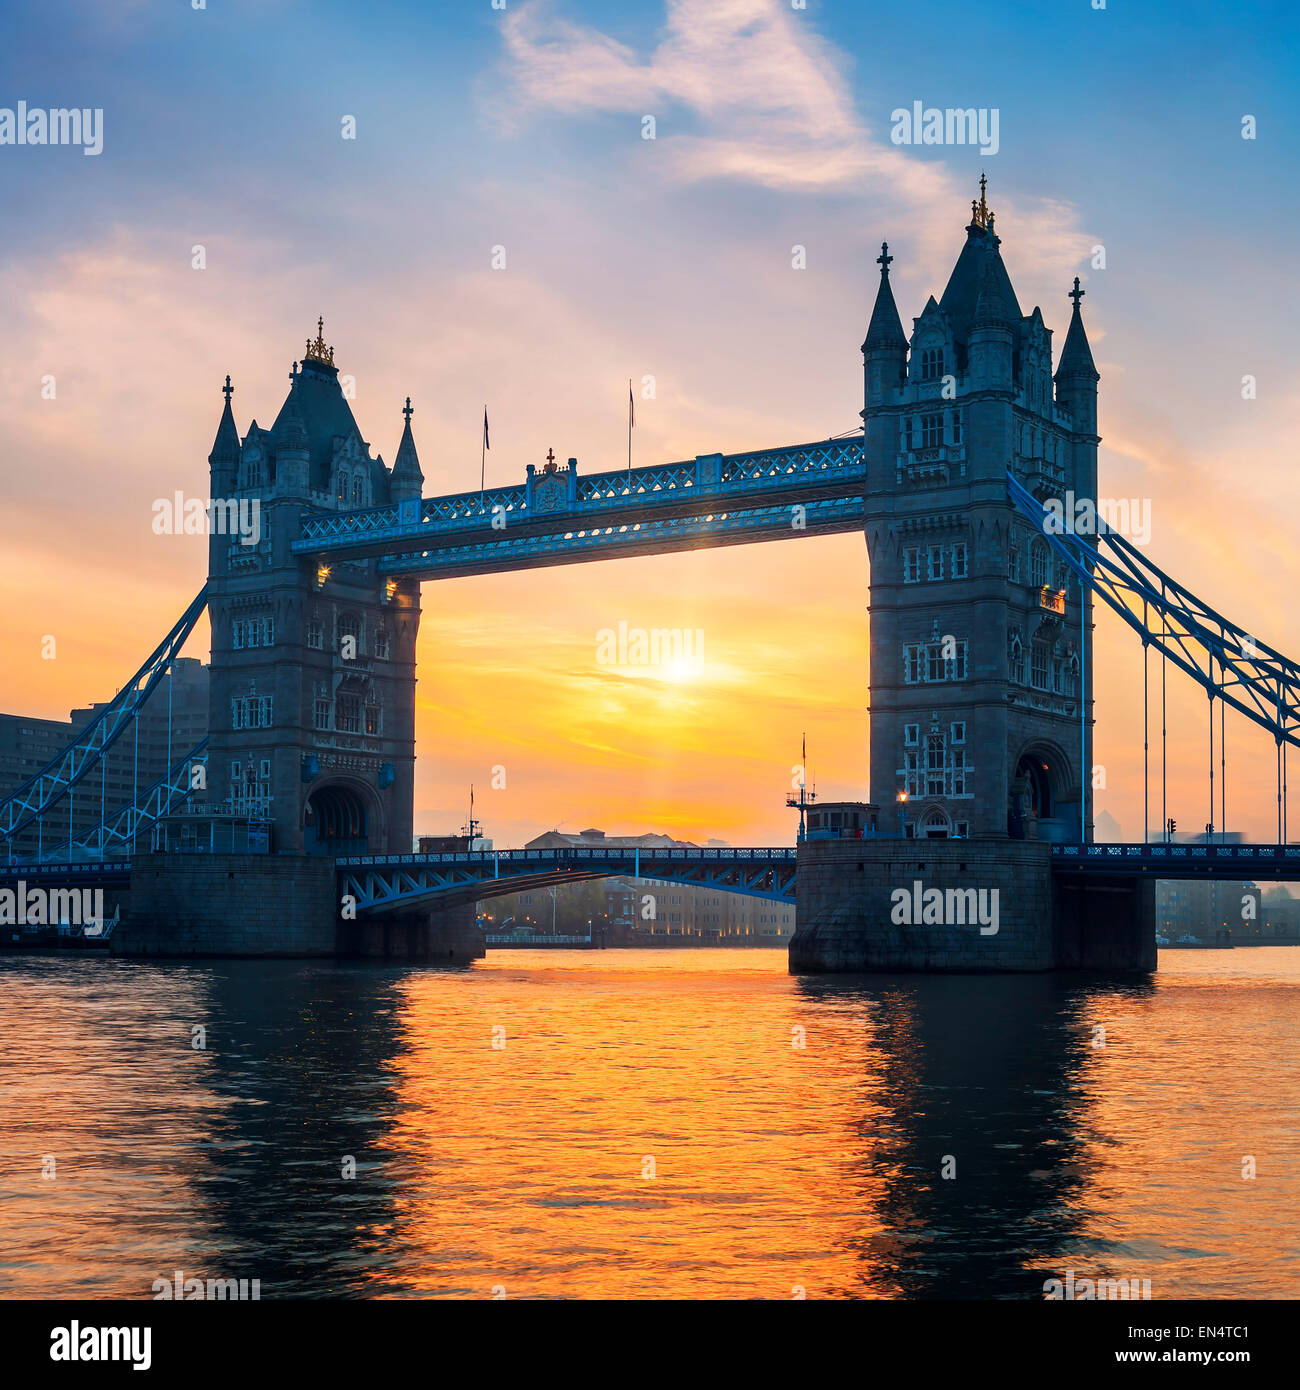 Tower Bridge at sunrise, London. - Stock Image